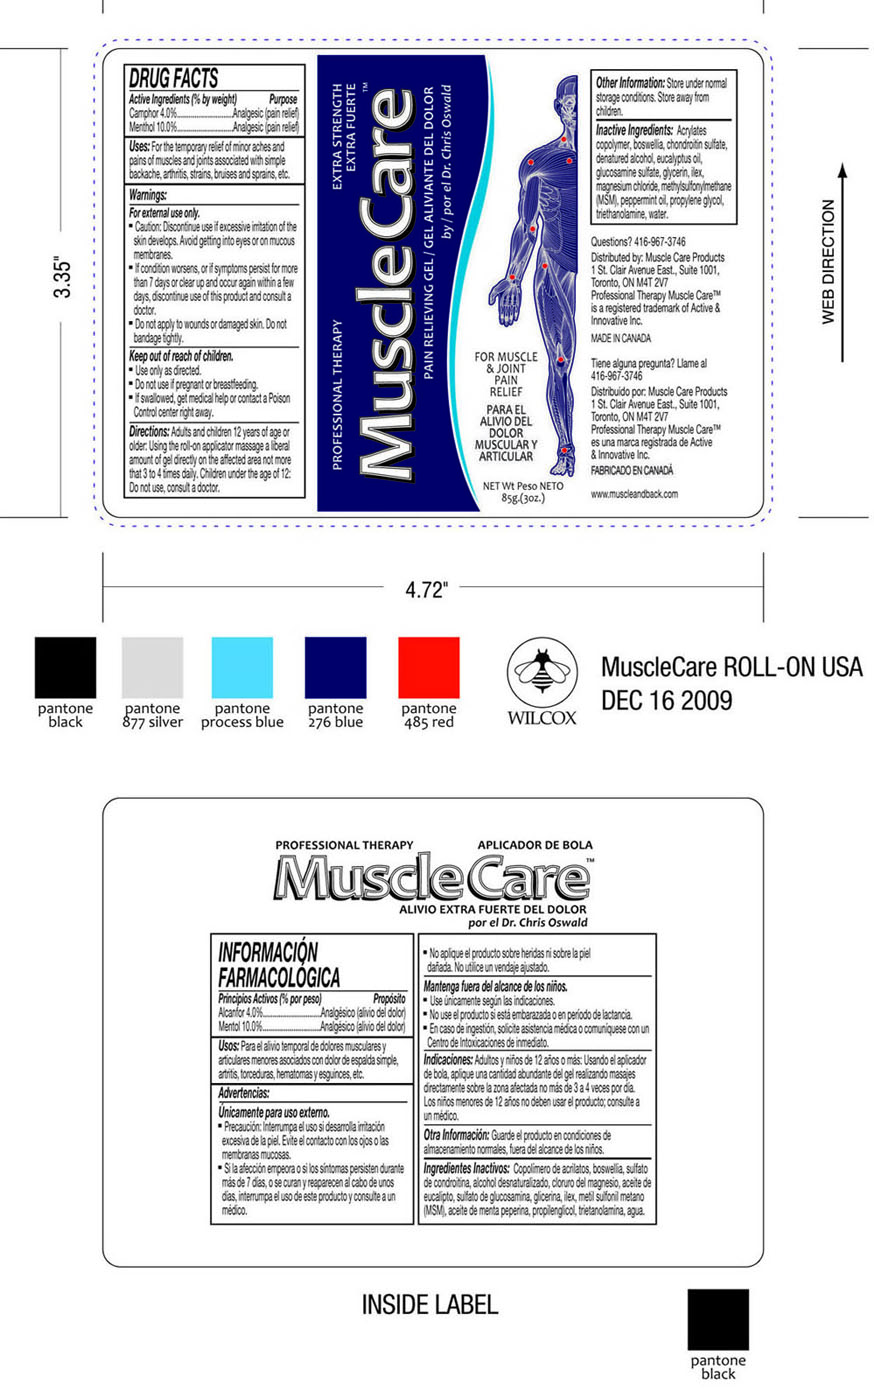 Musclecare Pain relieving gel